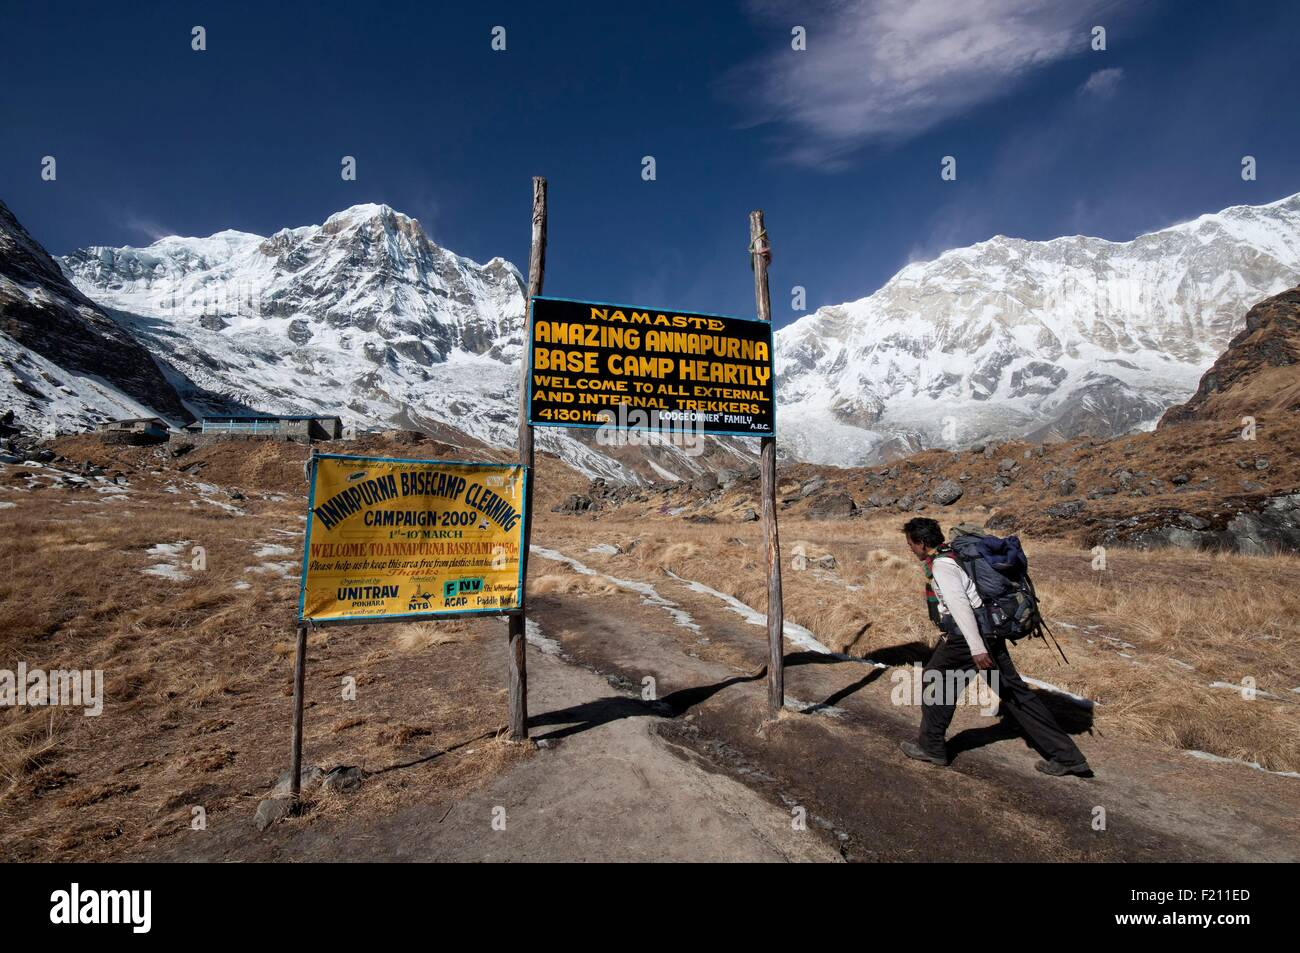 Nepal, Gandaki, Annapurna region, Nepali trekker reaching the Annapurna Base Camp at 4130m altitude - Stock Image